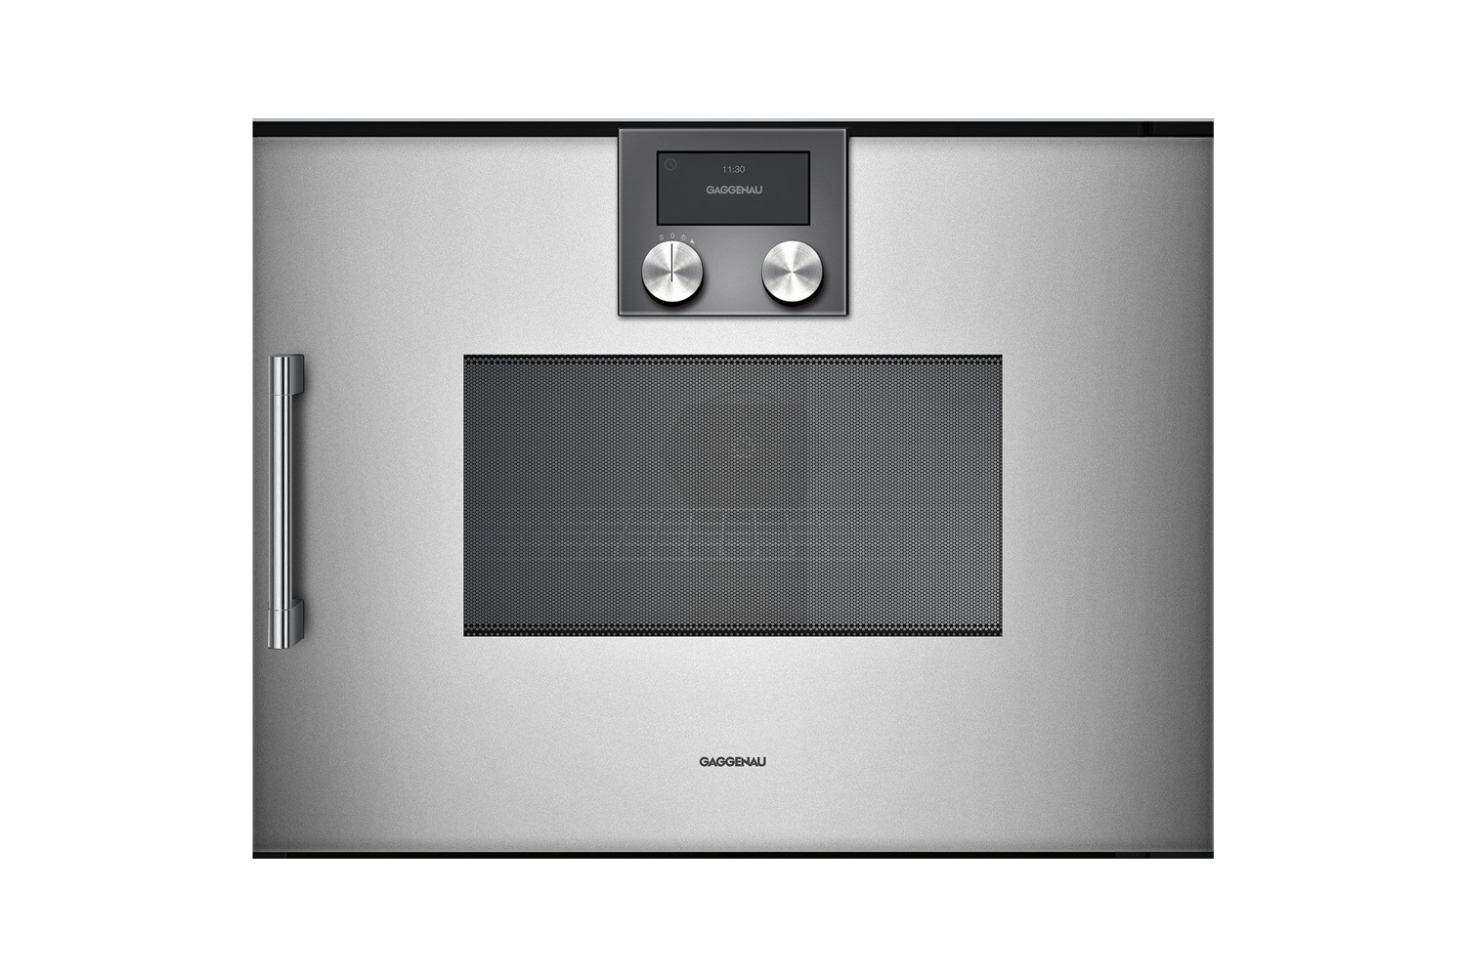 The Gaggenau 0 Series -Inch Speed Oven features a touch display, rapid heating, a 60-watt halogen light, and is controlled by a rotary knob. Available through AJ Madison; contact for pricing and availability.